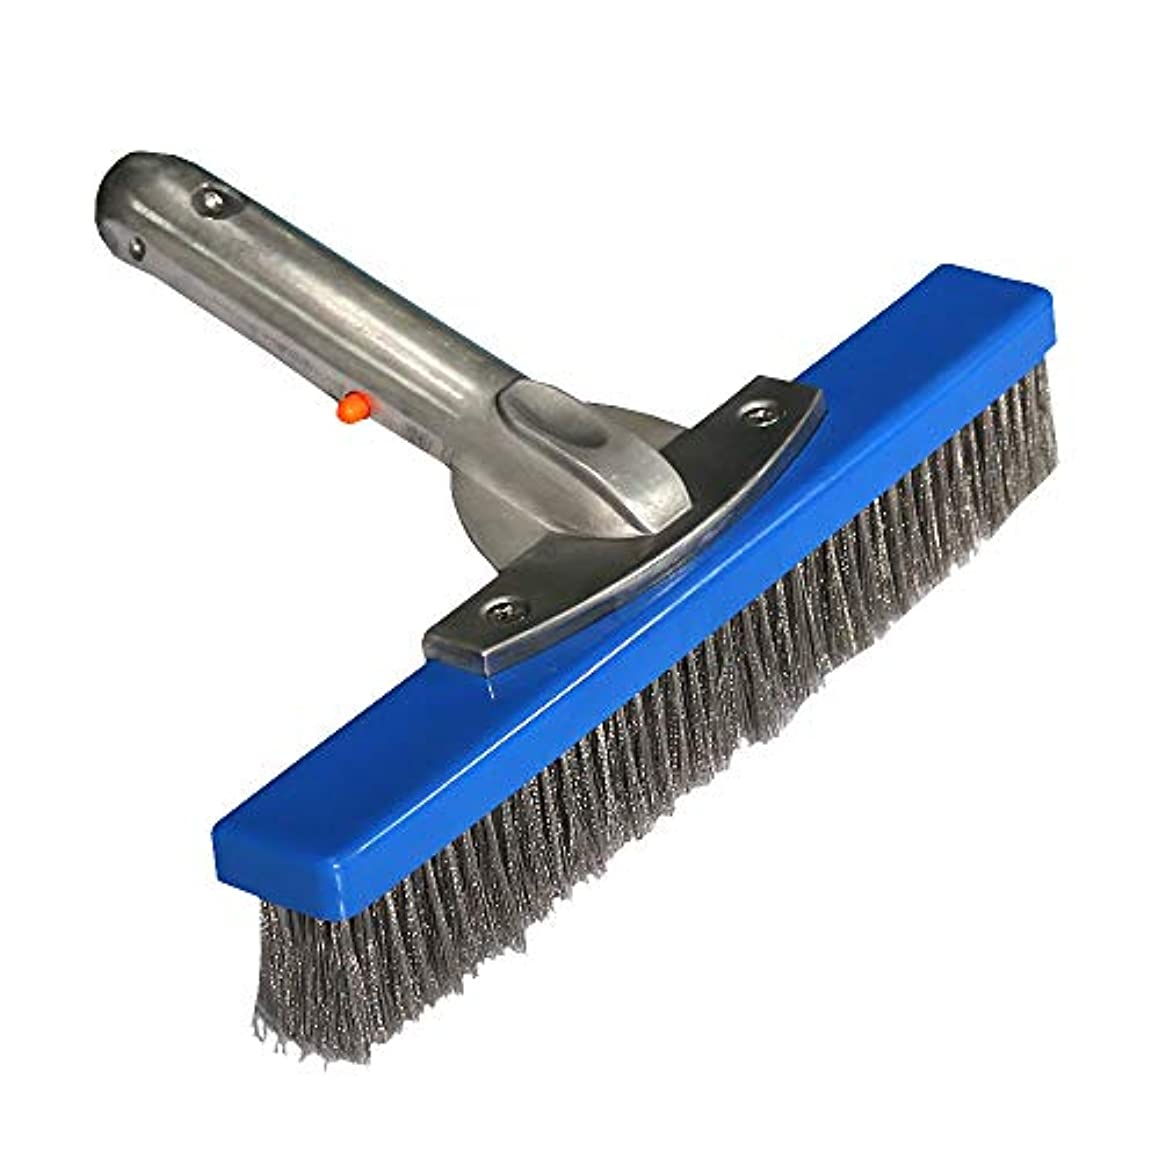 Daveyspa 10''Swimming Pool Brush Stainless Steel Wire Brush for Walls,Tiles & Floors Curved Cleaning Brushes.